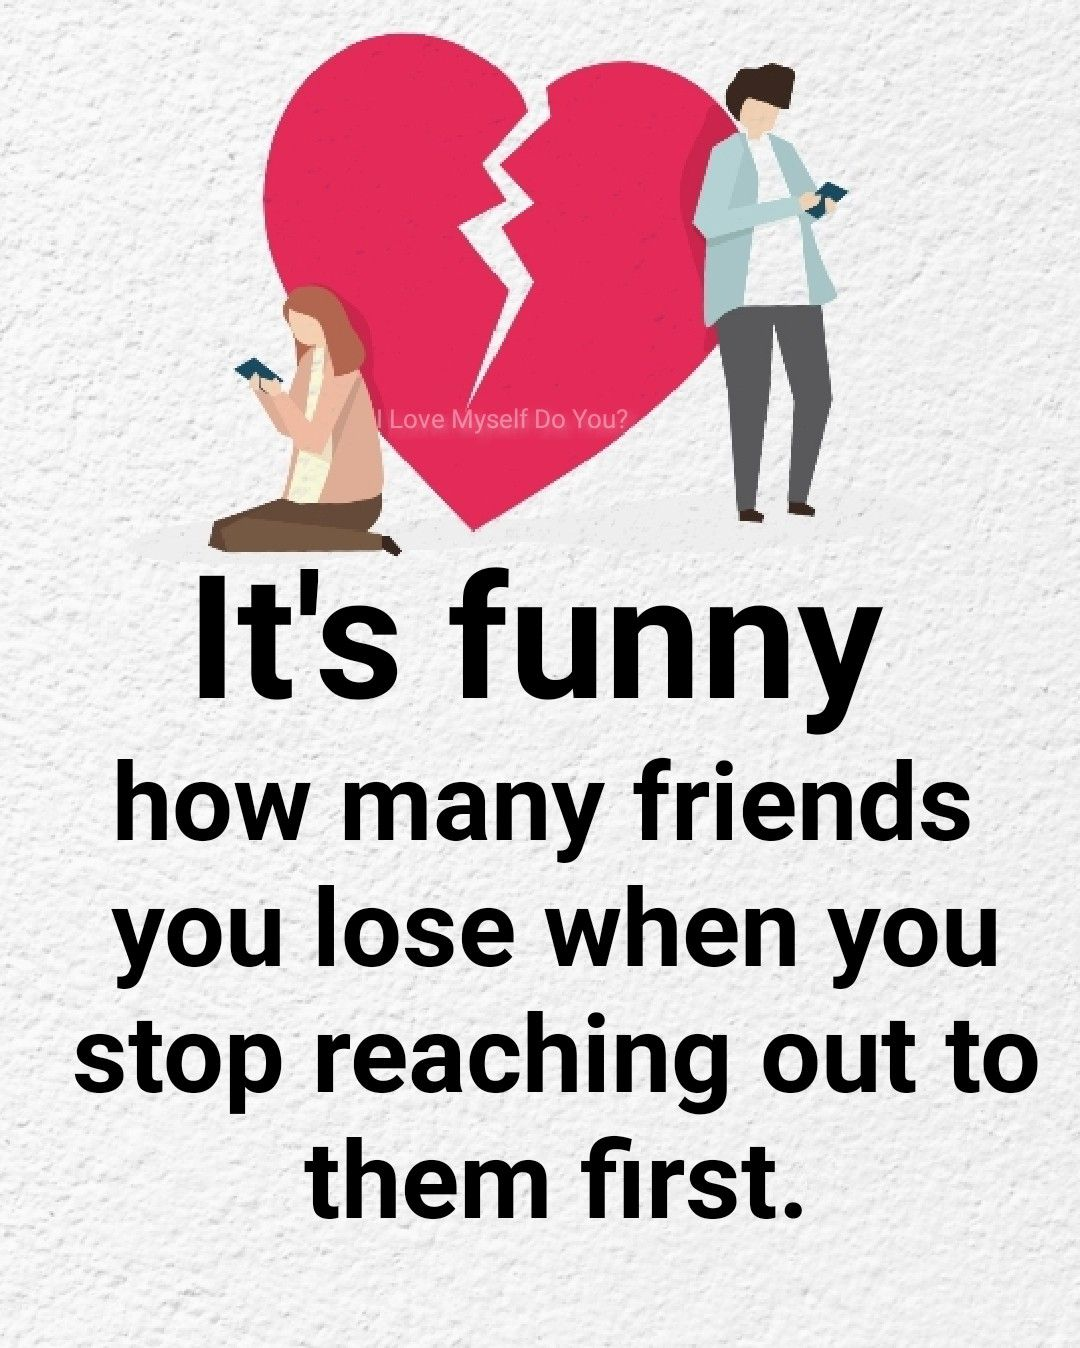 How Many Friends You Lose When Words Quotes Best Motivational Quotes Motivational Quotes